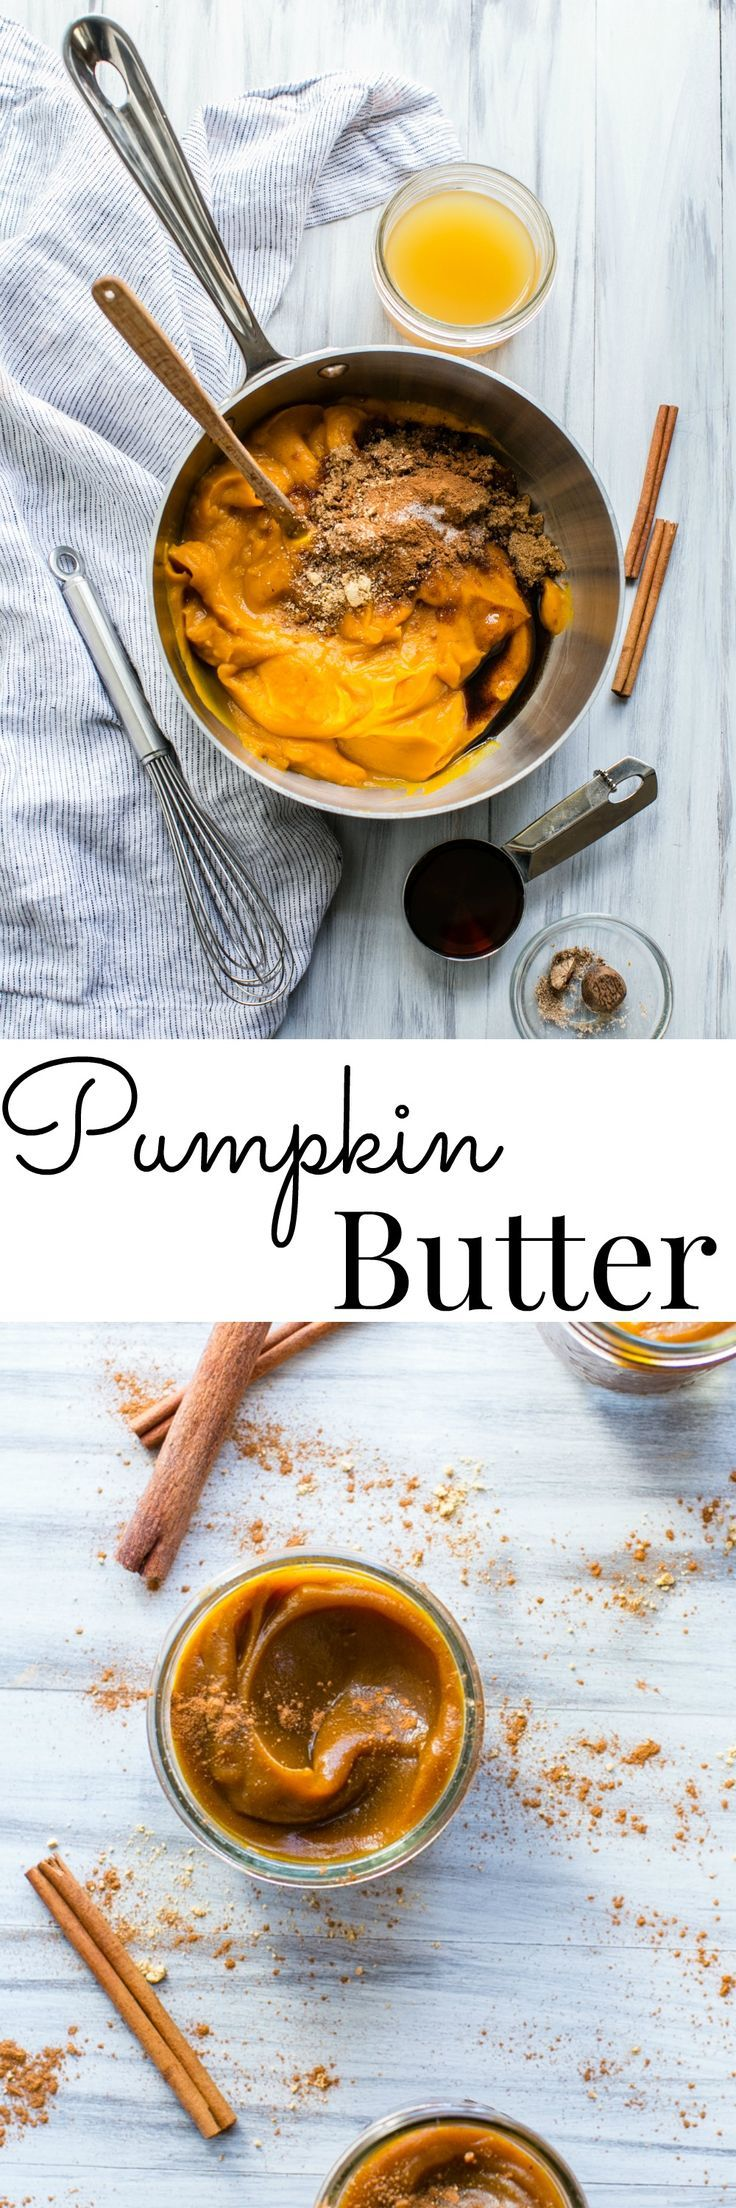 Slather it on biscuits, toast, waffles, eat it with a spoon or swirl it into oatmeal. Freezer friendly and makes a generous gift. Pumpkin Butter | Vegan + Gluten Free